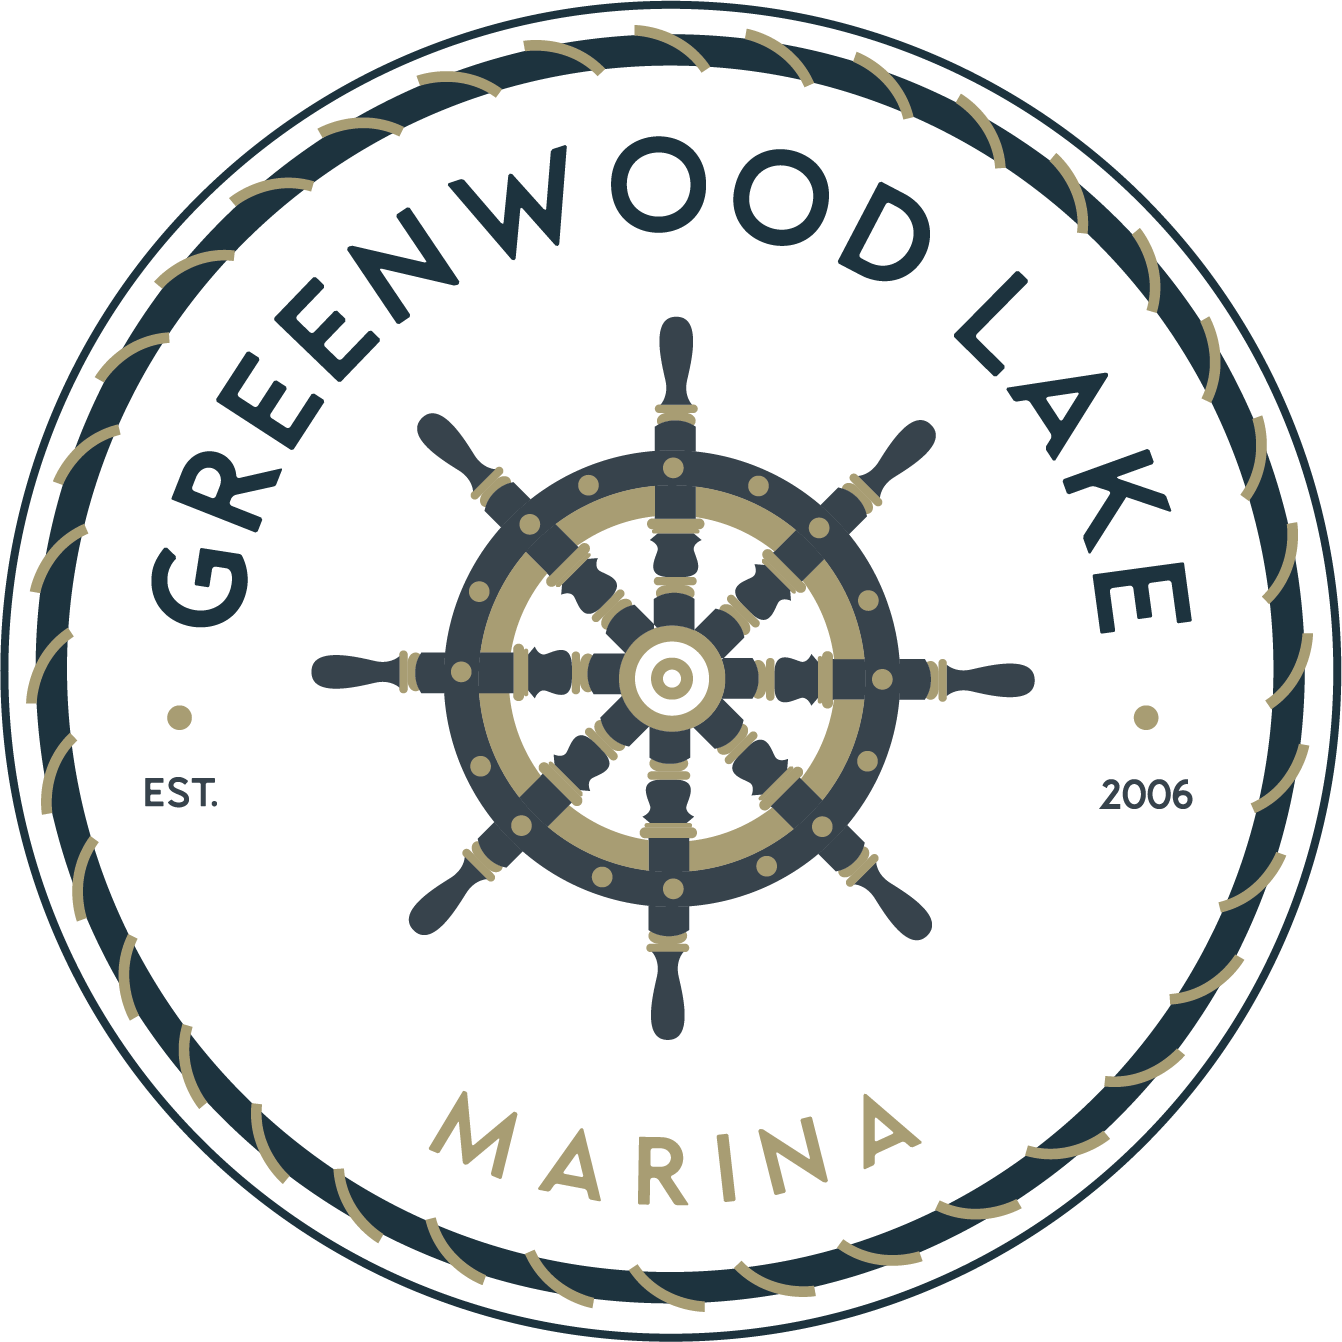 Greenwood Lake Marina is an official retail partner for the pontoon anchoring solution